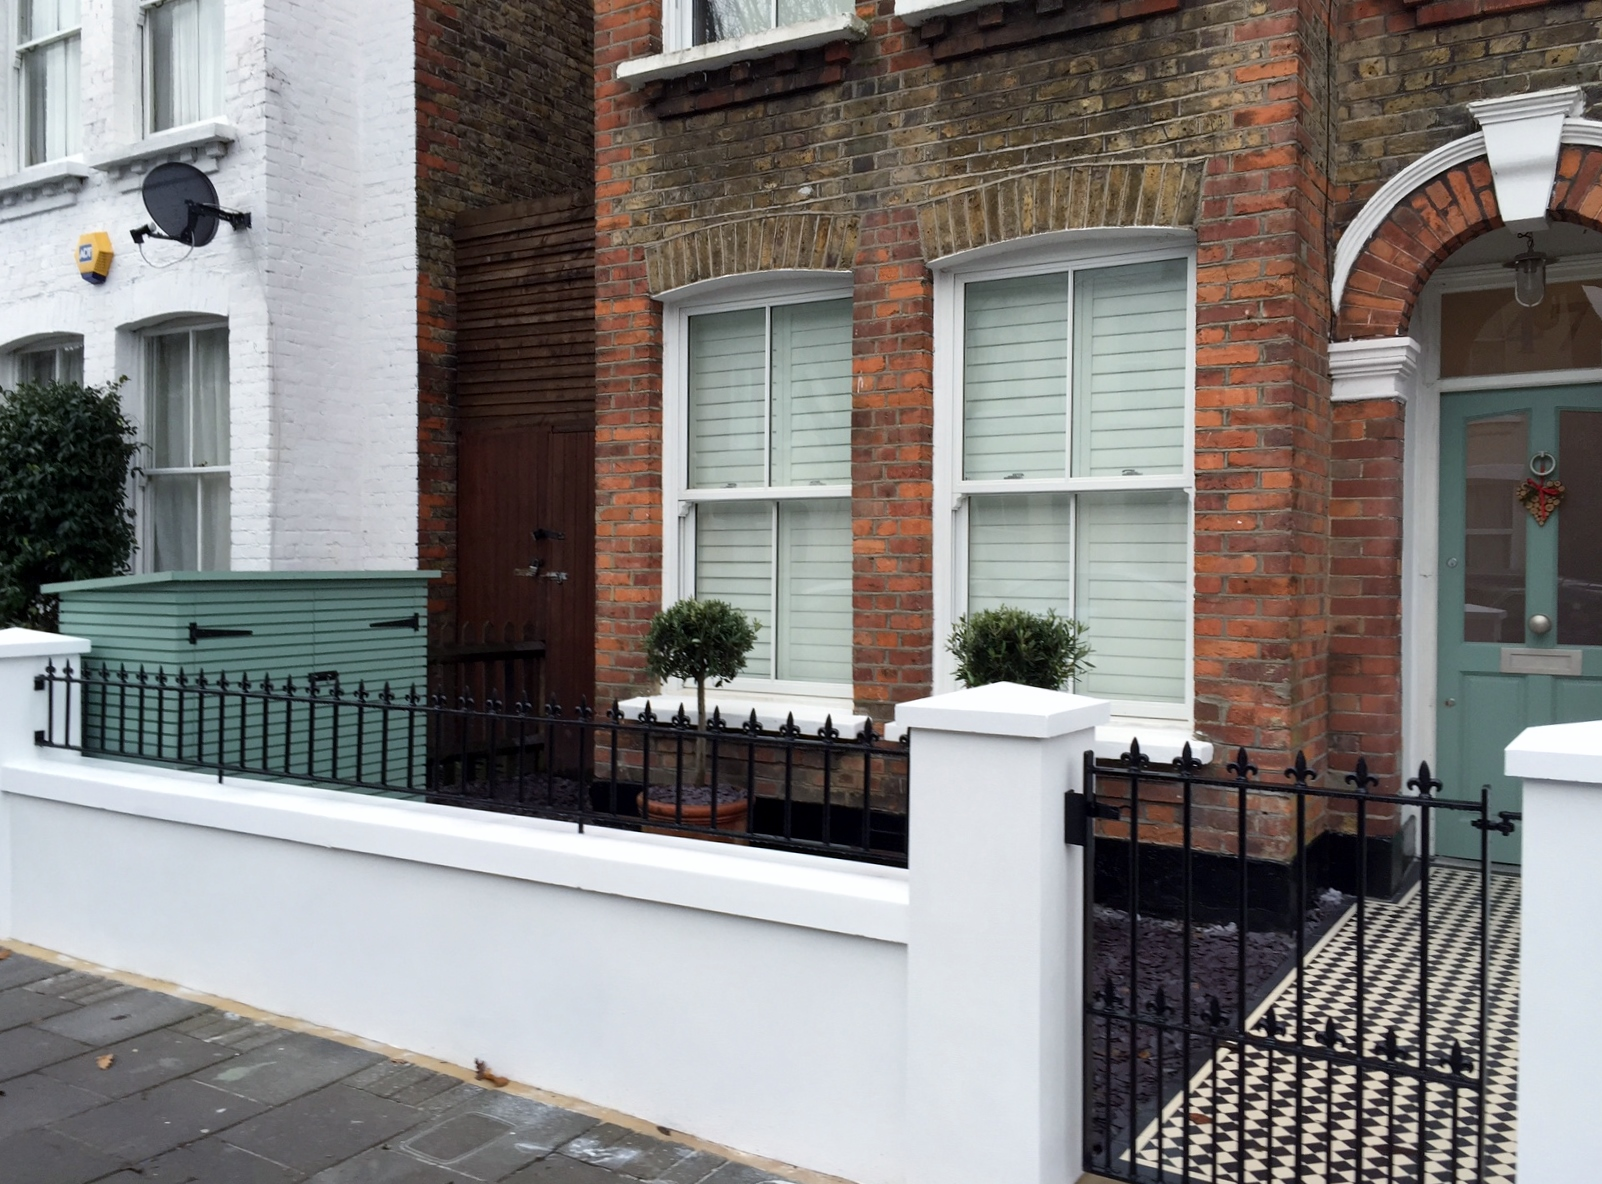 victorian front garden company walls rails black and white mosaic tile path bespoke bin store olive tree topiary plants balham clapham battersea london - Front Garden Ideas London